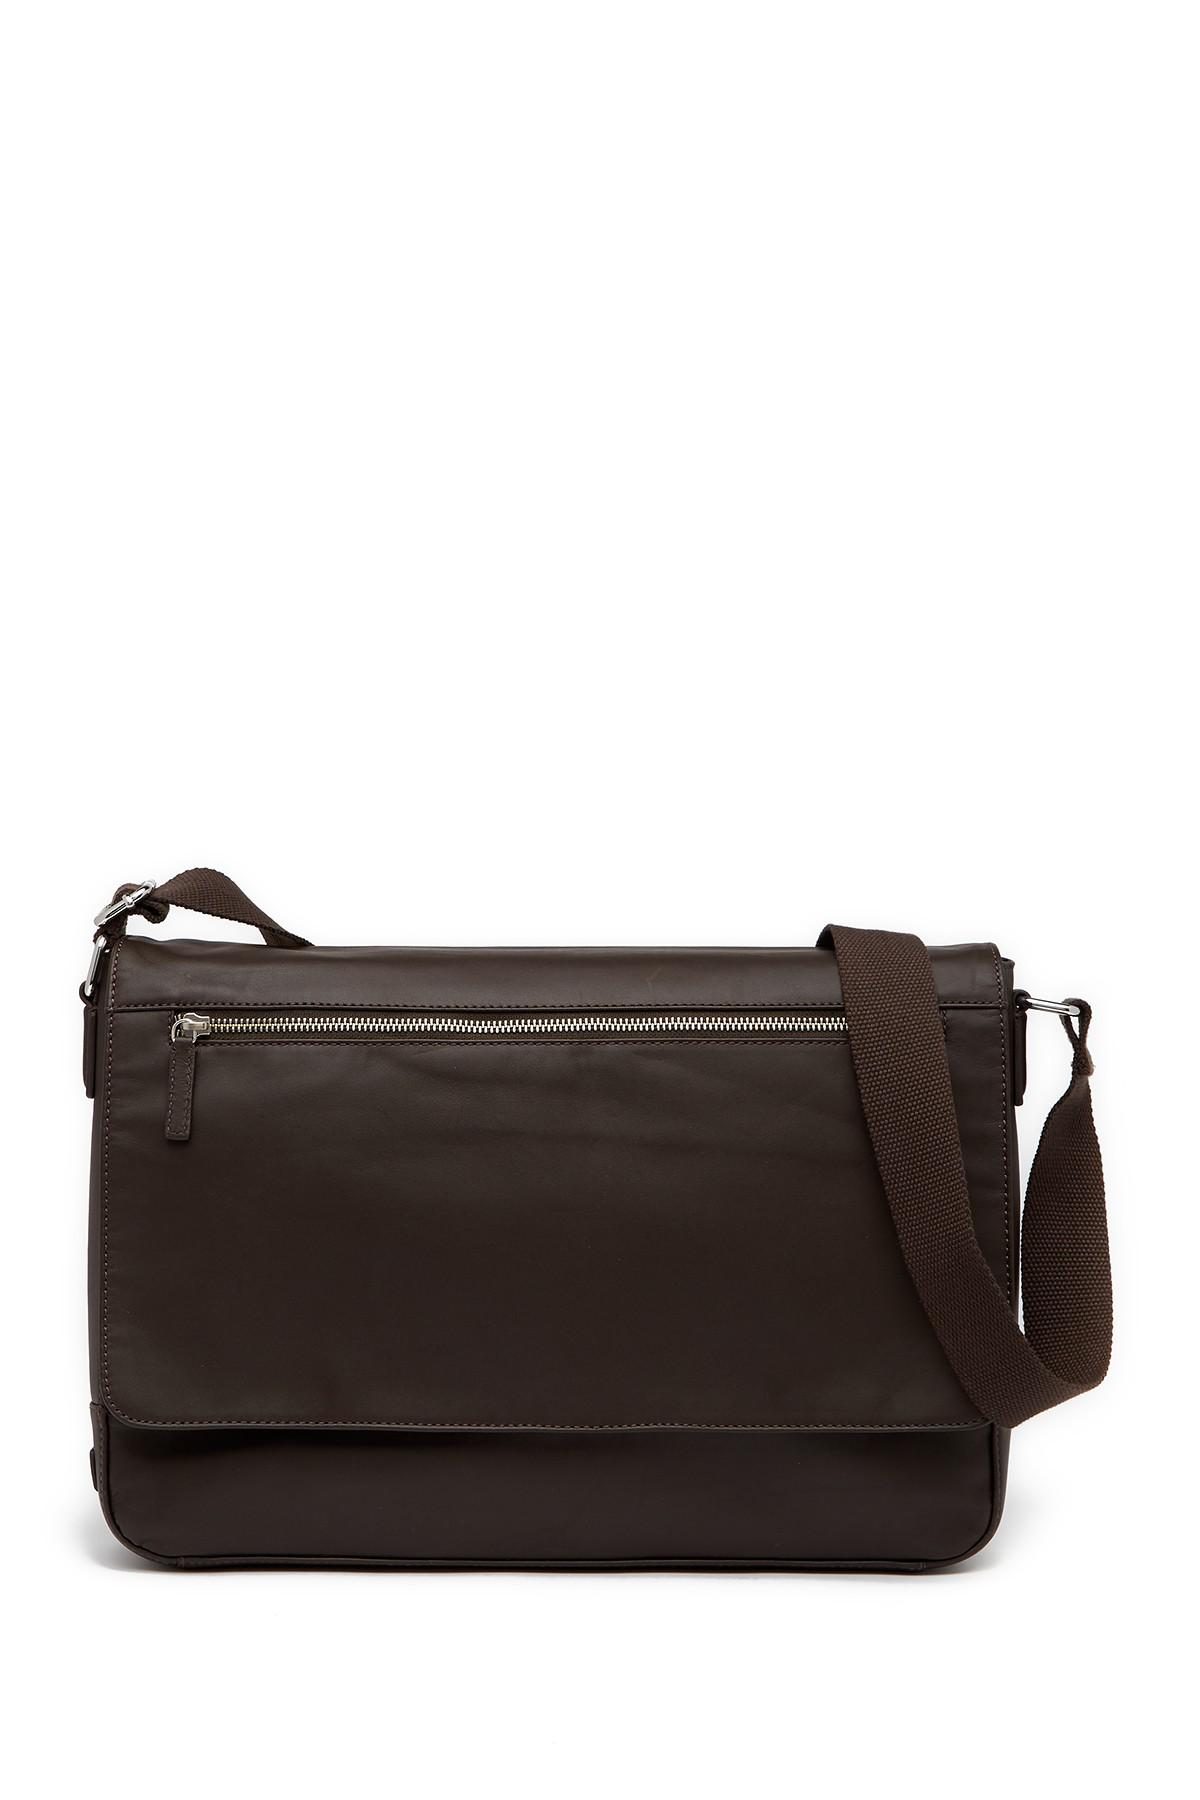 84cab921238ff Lyst - Cole Haan Smooth Leather Messenger Bag in Black for Men